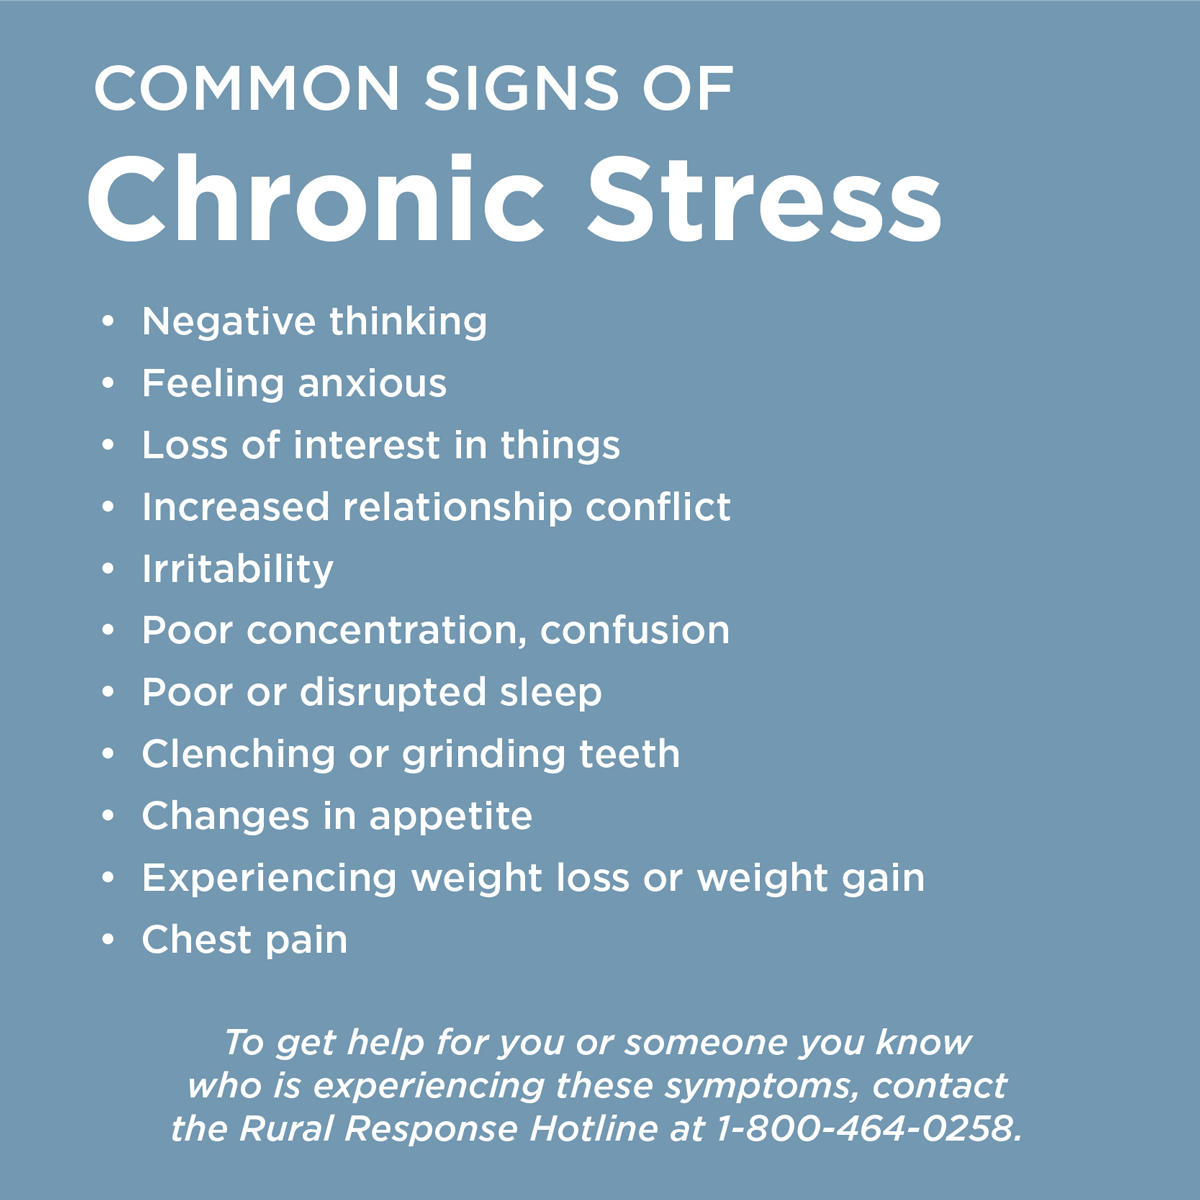 Graphic listing common signs of stress experienced by farmers